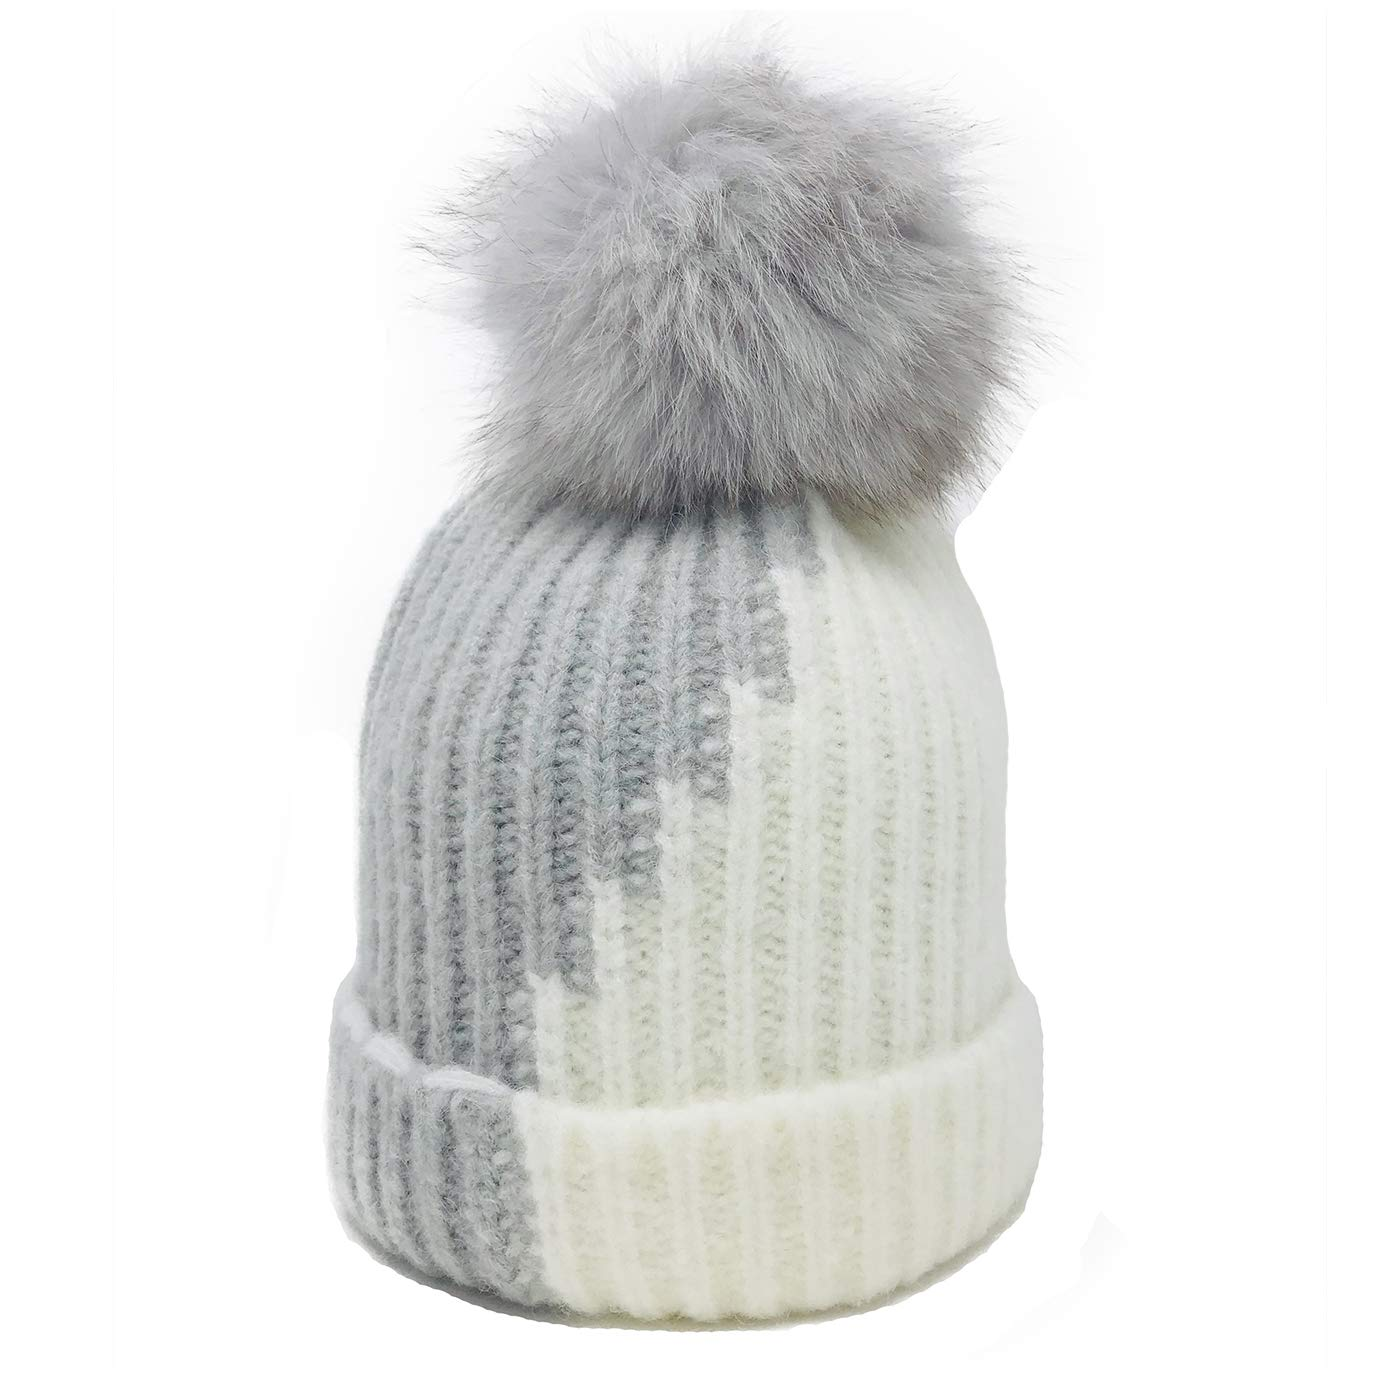 4ec340c032b Womens Beanie Hats for Winter Wool Warm Cap Real Fur Pom Pom Knit Beanie  Caps for Girls and Boys Gray   White Kids